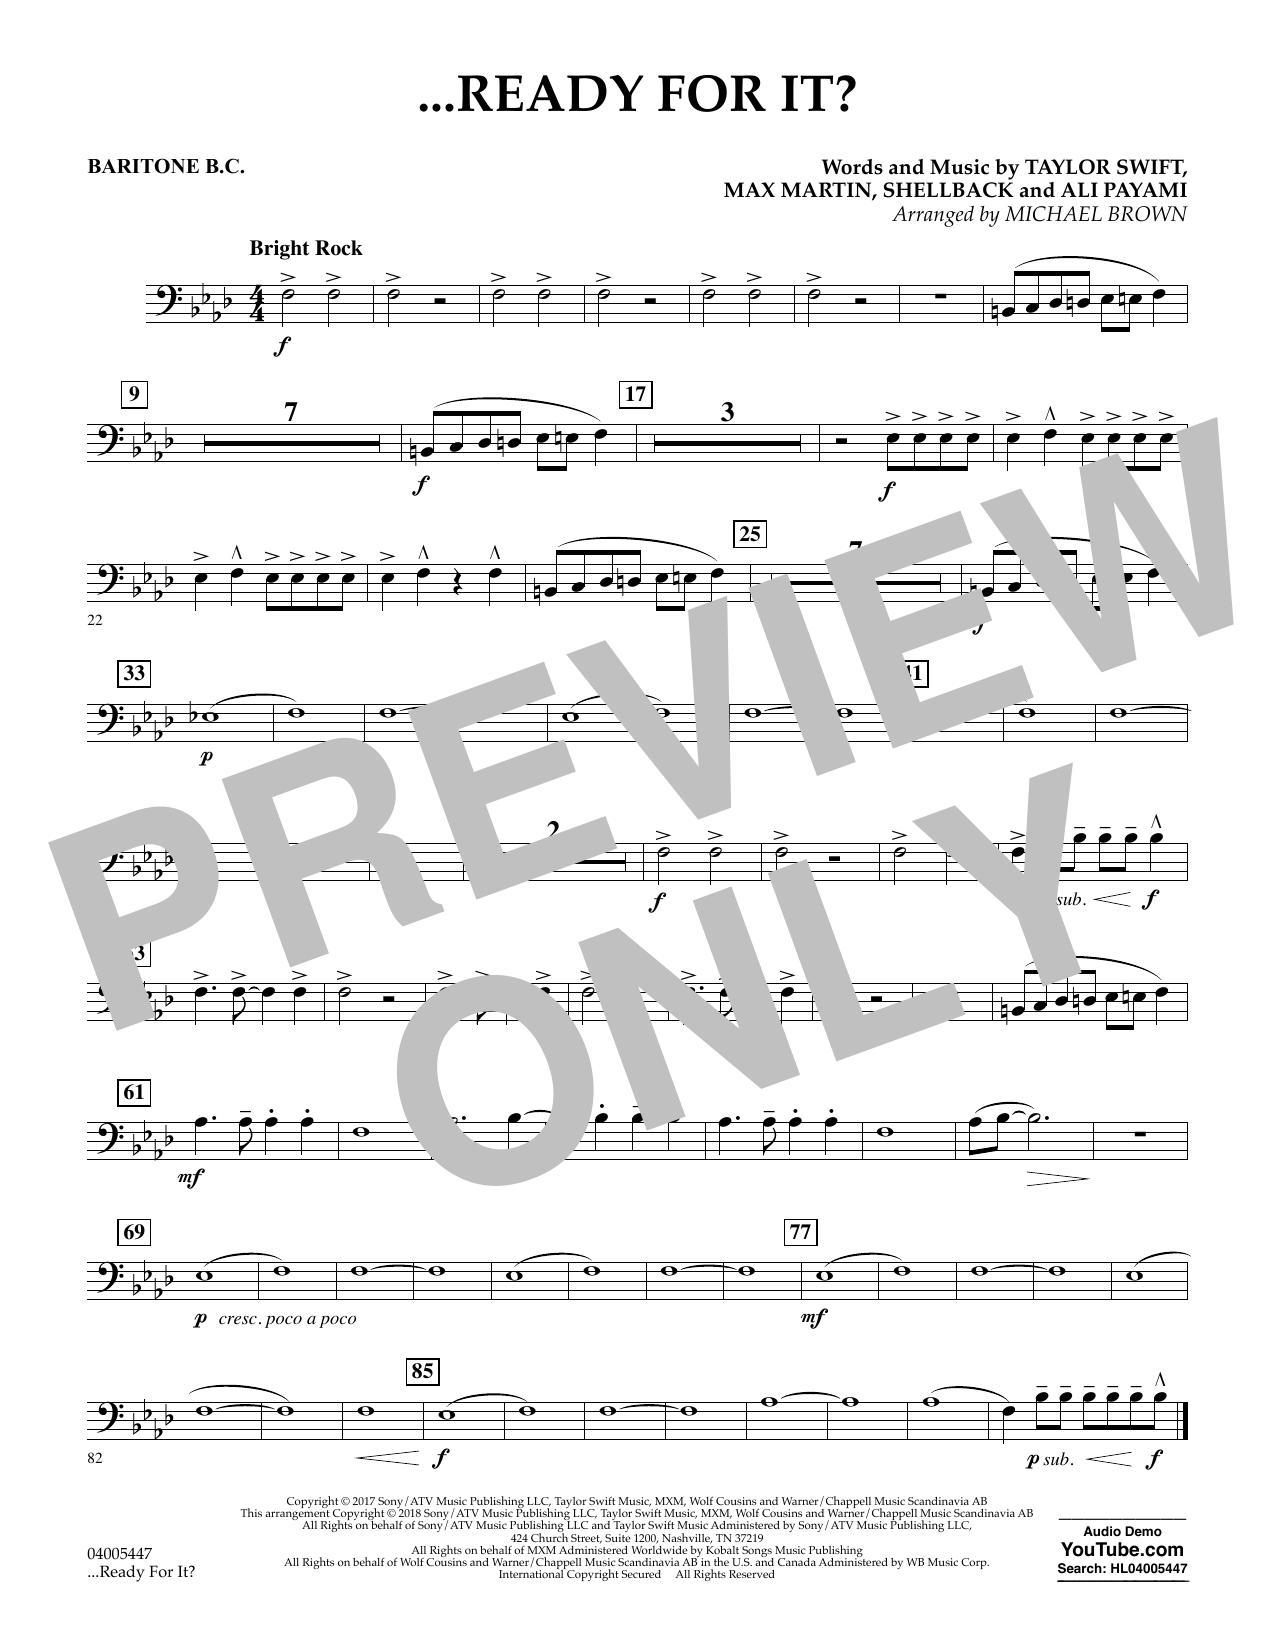 Michael Brown ...Ready for It? - Baritone B.C. sheet music notes and chords. Download Printable PDF.